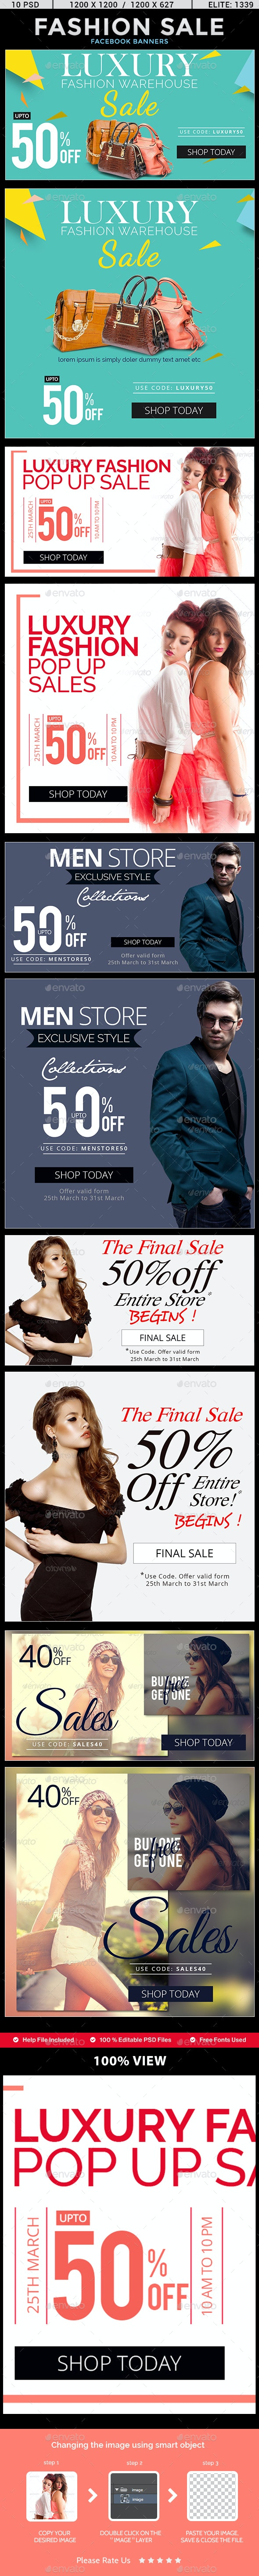 Fashion Sale Facebook News Feed Banners - 5 Designs - 2 Sizes Each - Social Media Web Elements